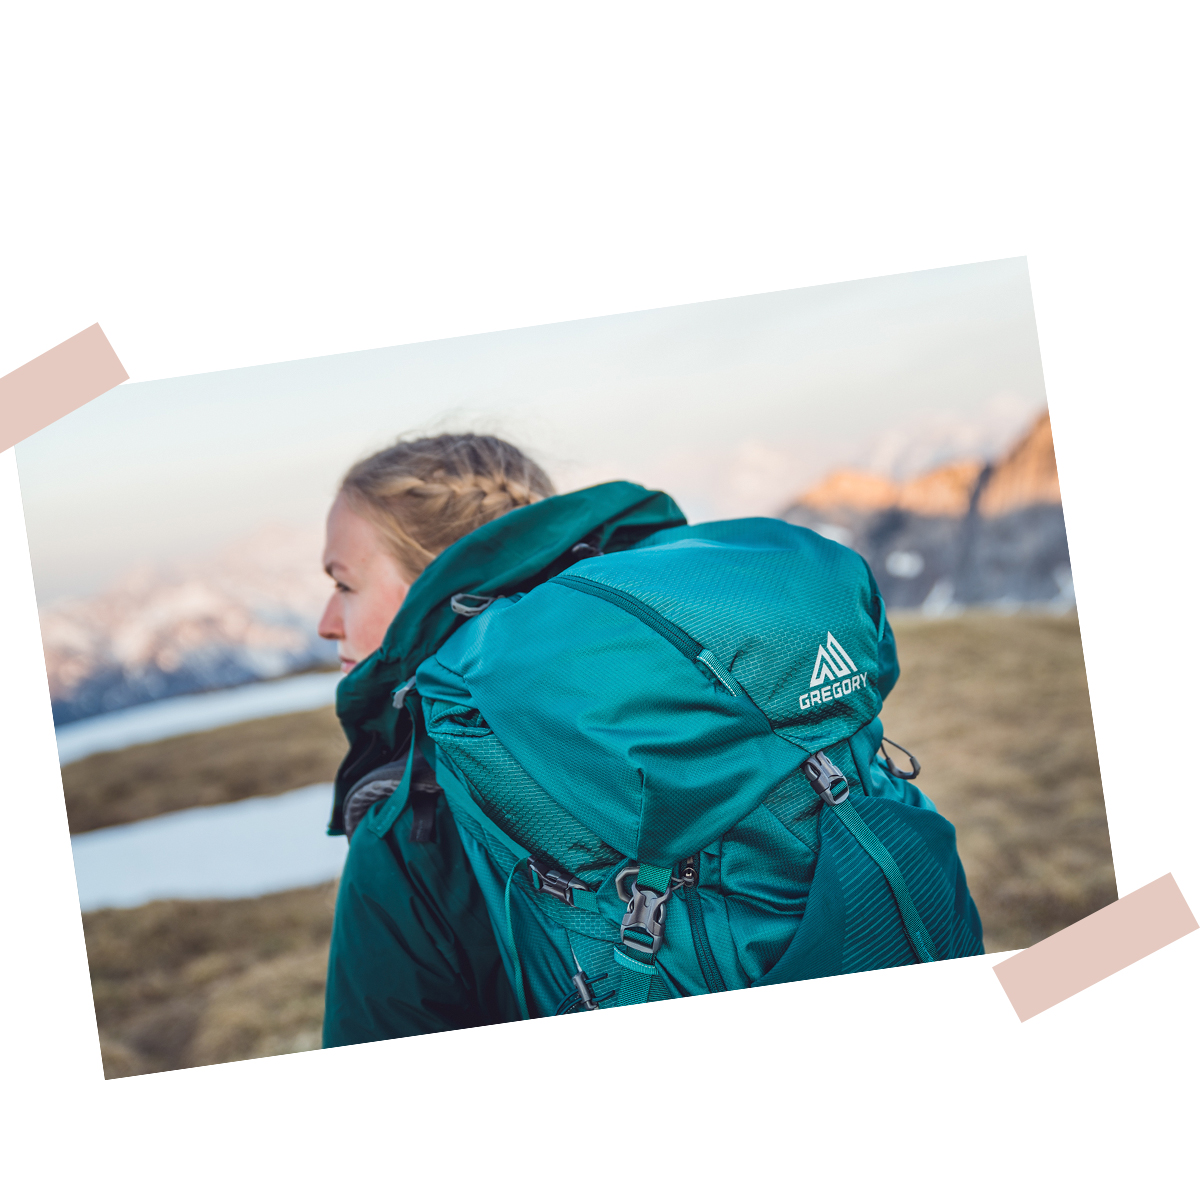 © Lukas Reumschüssel – girl with huge backpack in the mountains